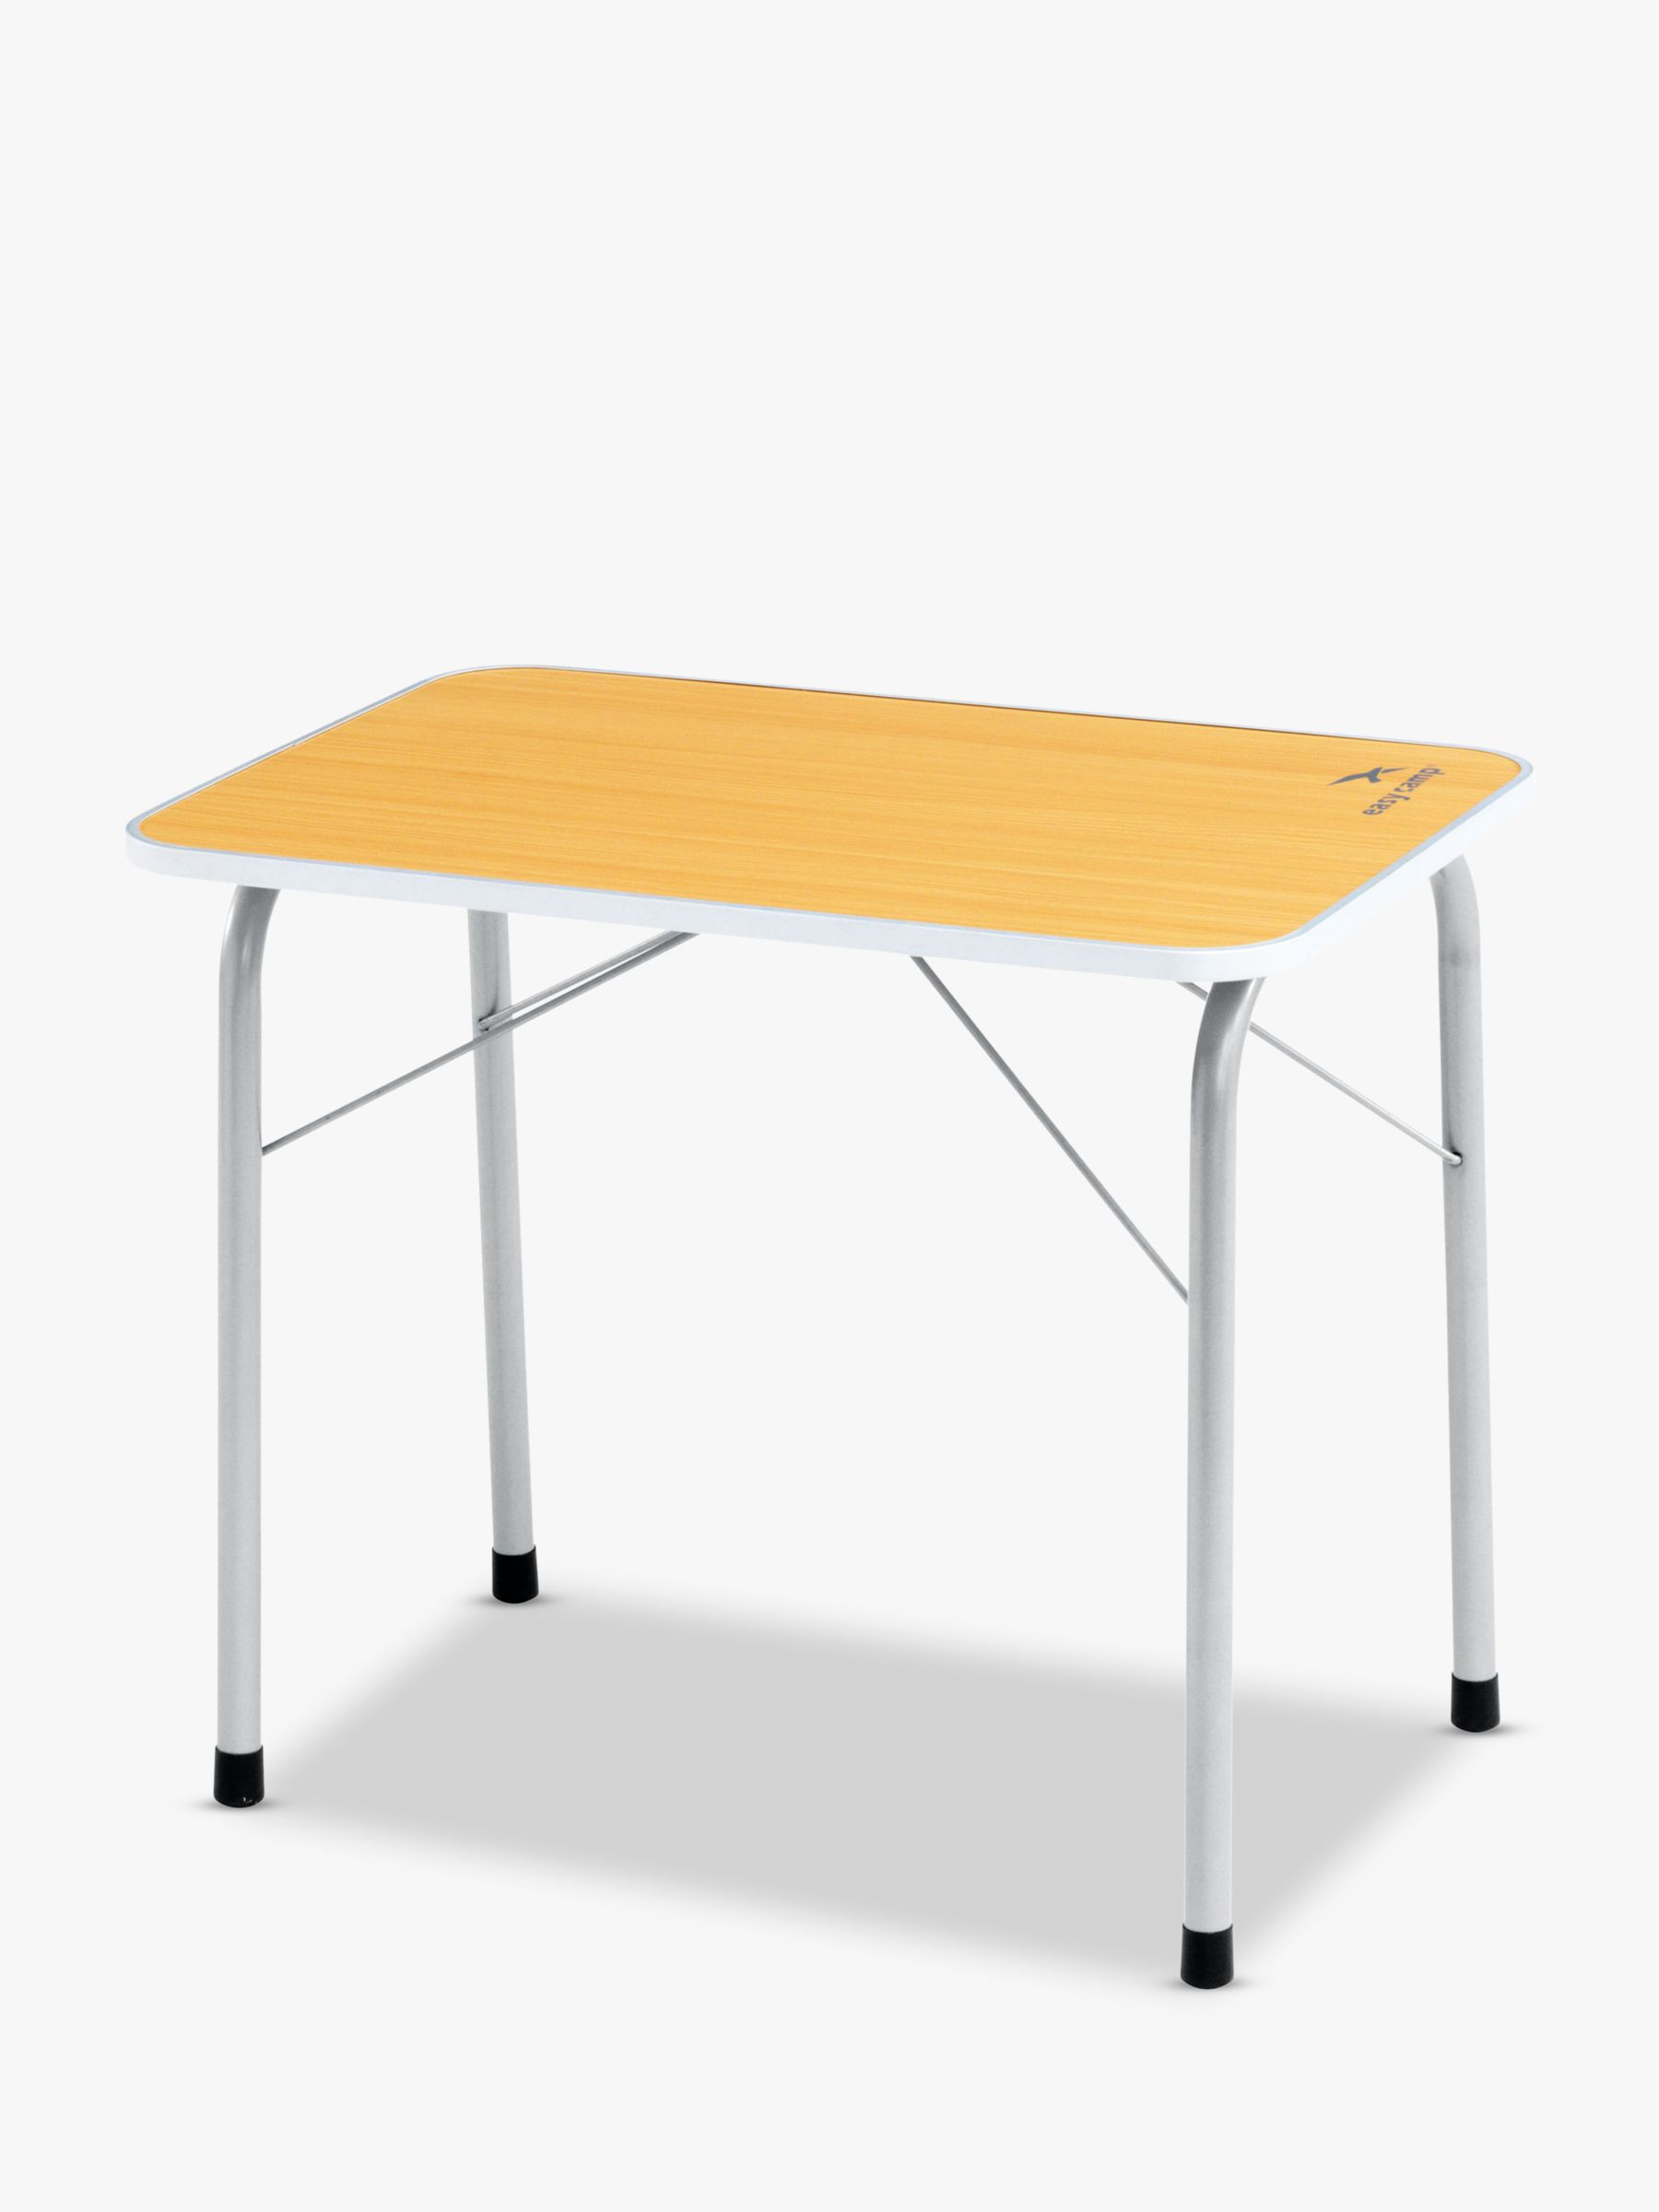 Easy Camp Caylar Folding Camping Table